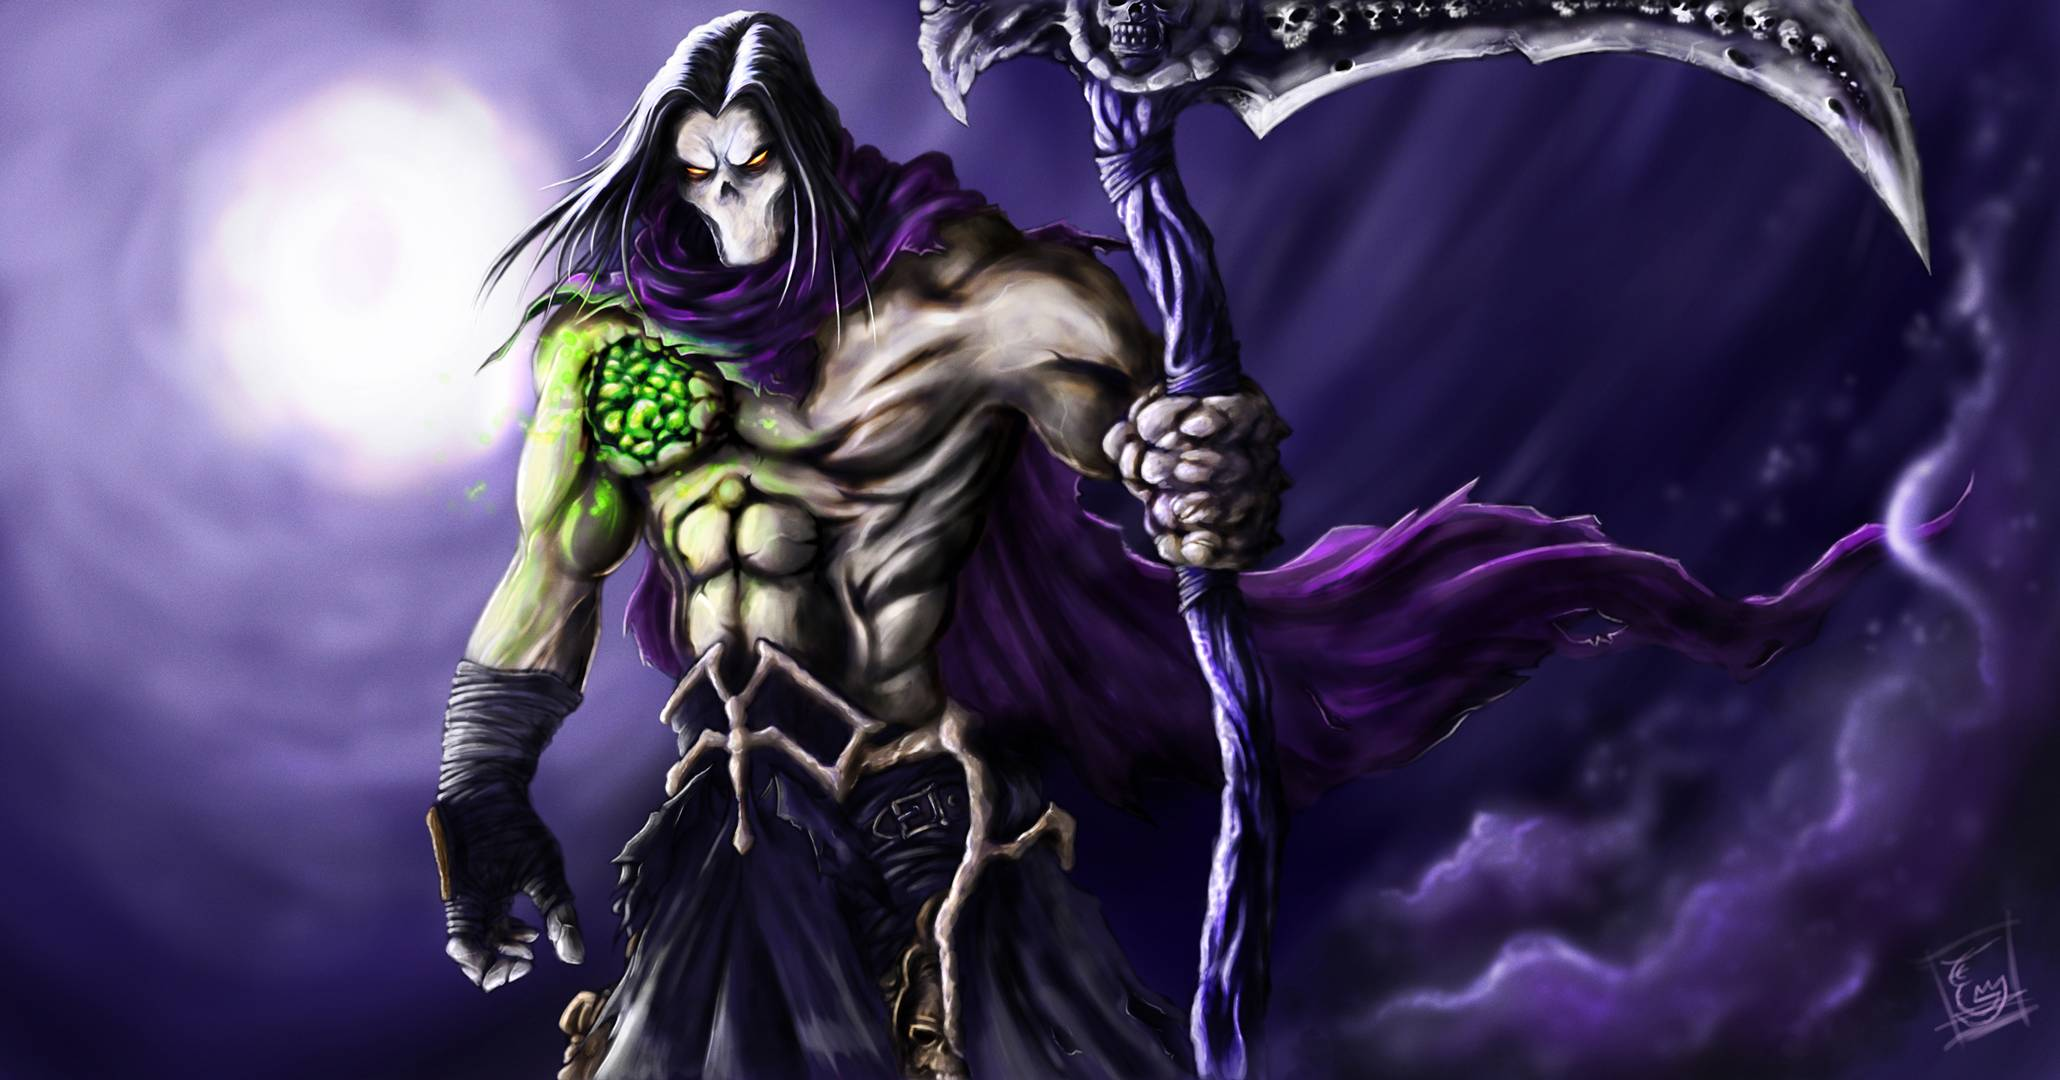 Darksiders 2 Wallpapers In HD GamingBoltcom Video Game News 2060x1080